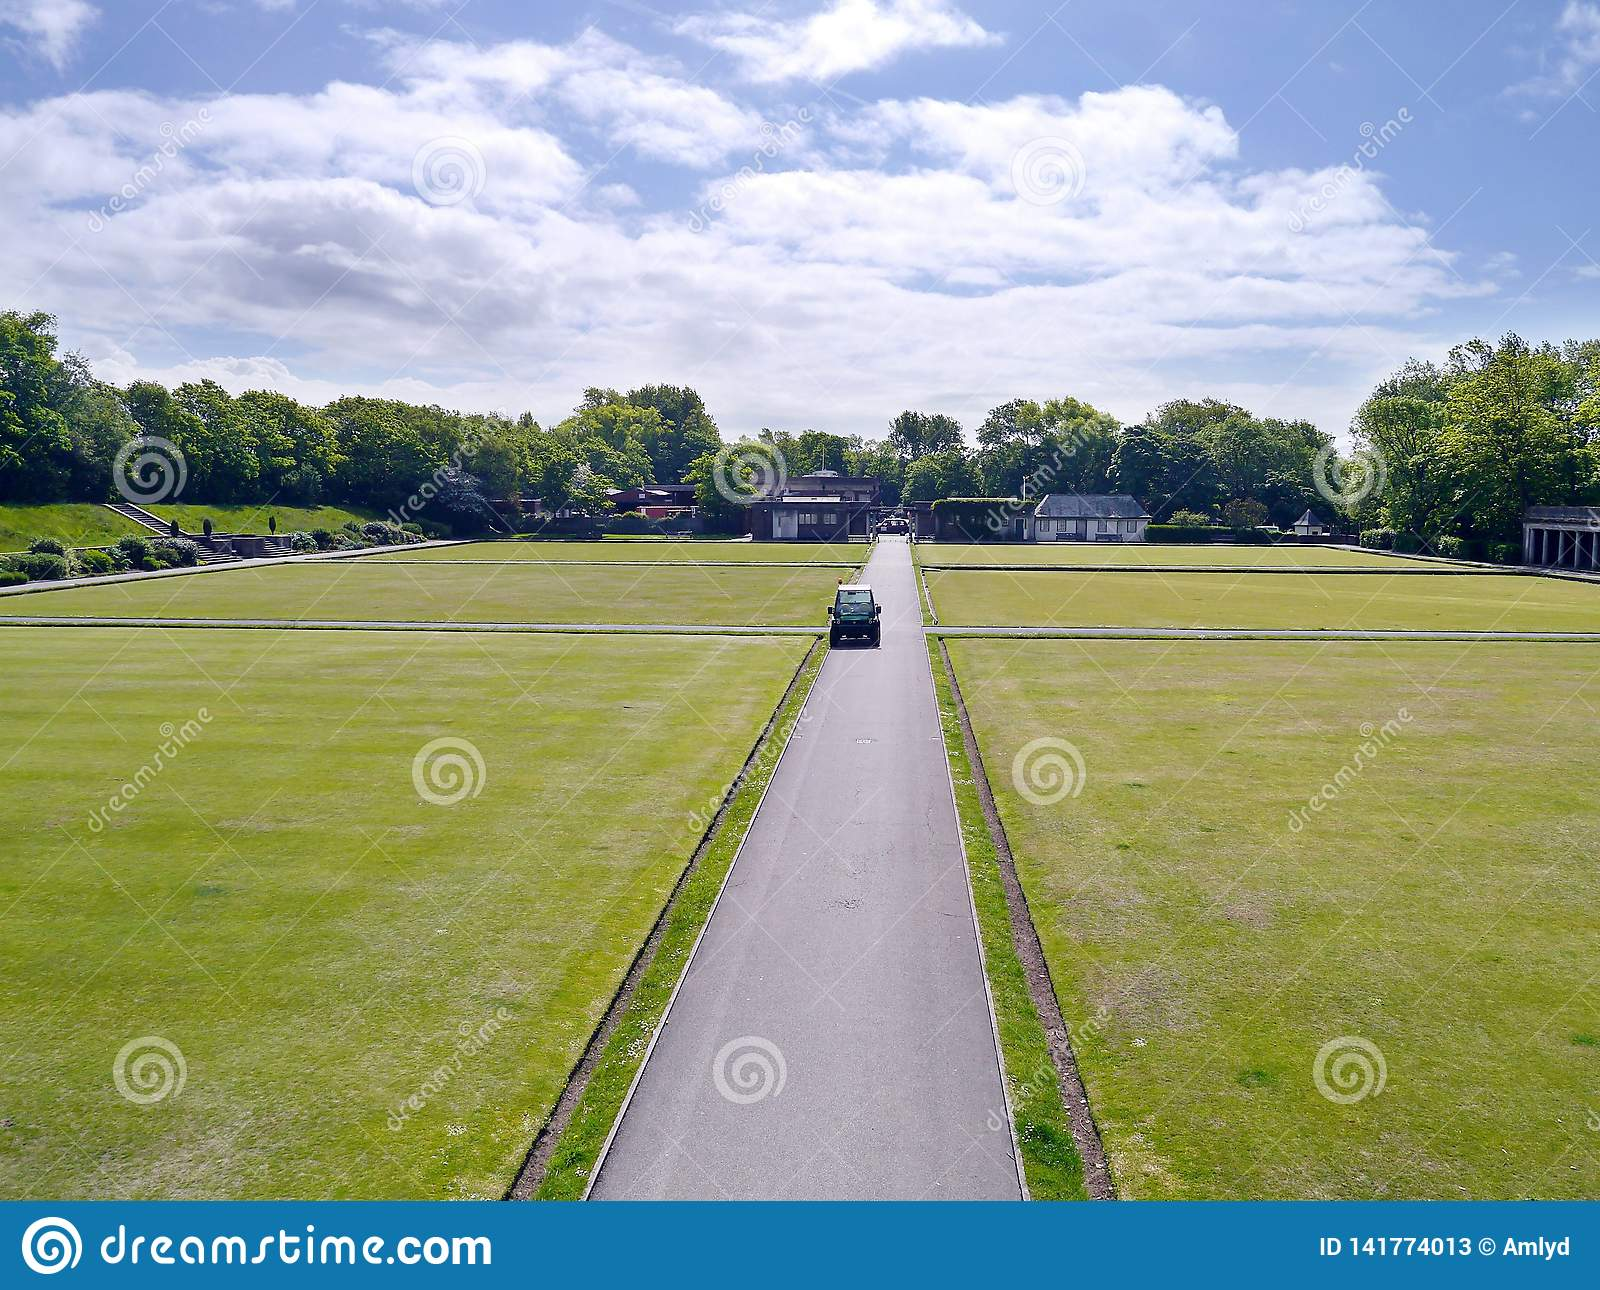 Well kept lawns for bowling